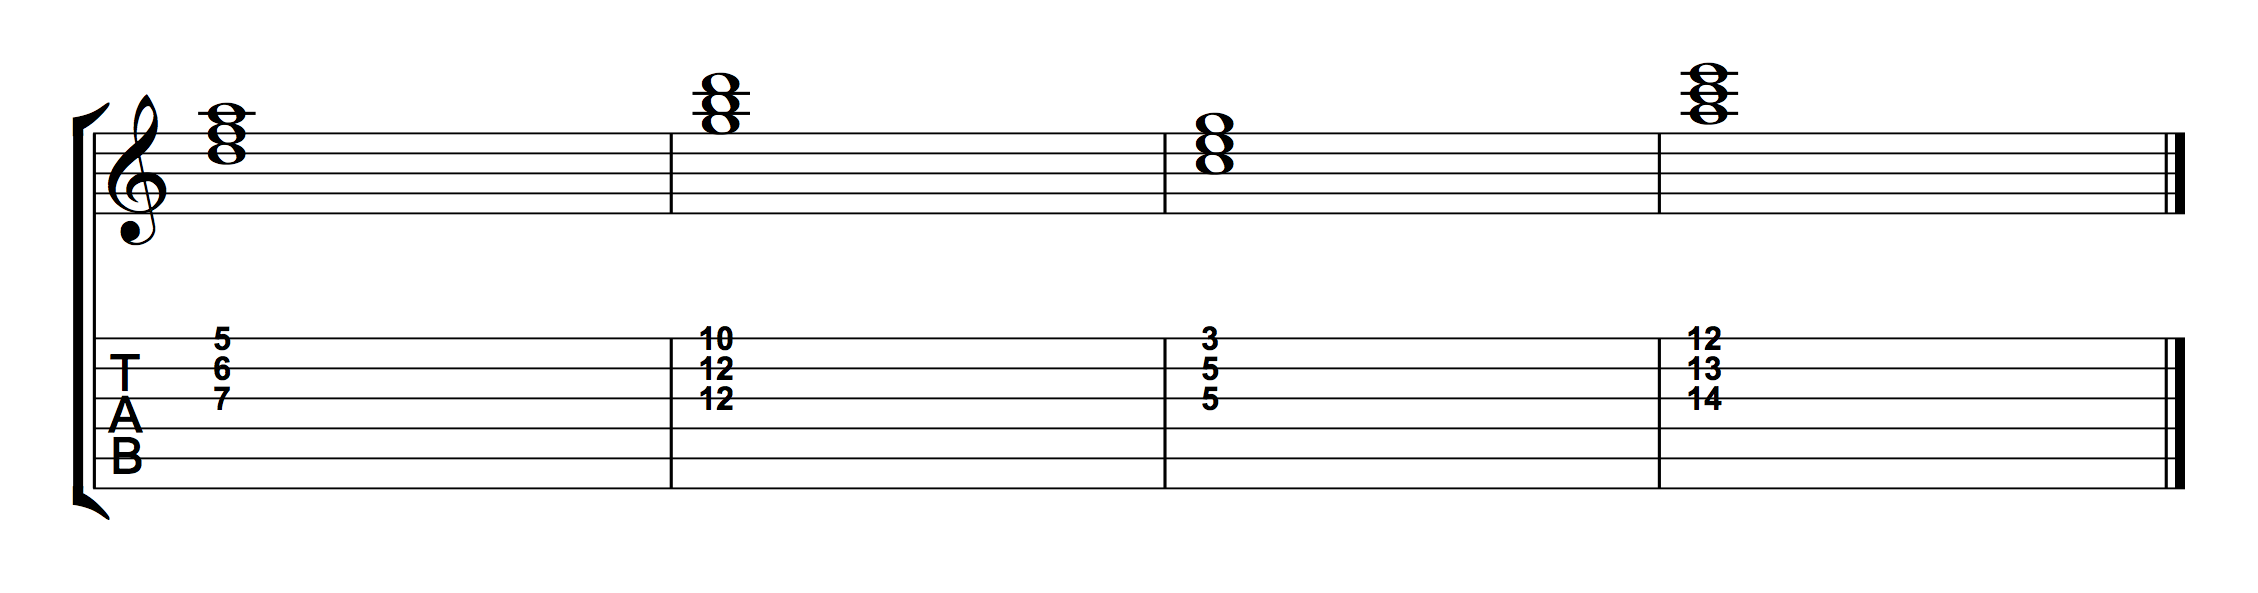 Chord Progression Using Root Position Triads